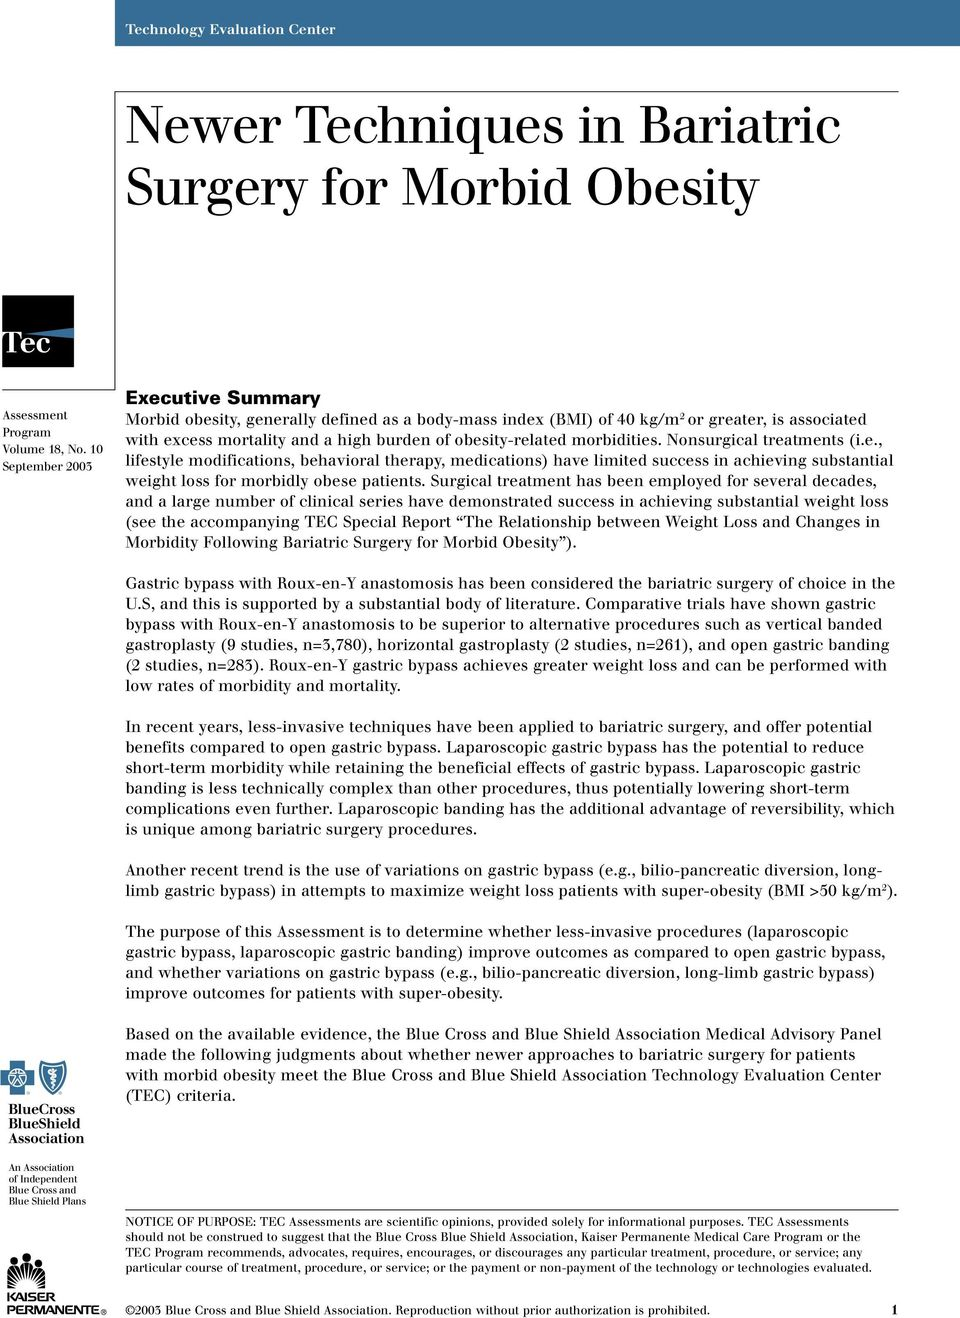 Newer Techniques In Bariatric Surgery For Morbid Obesity Pdf